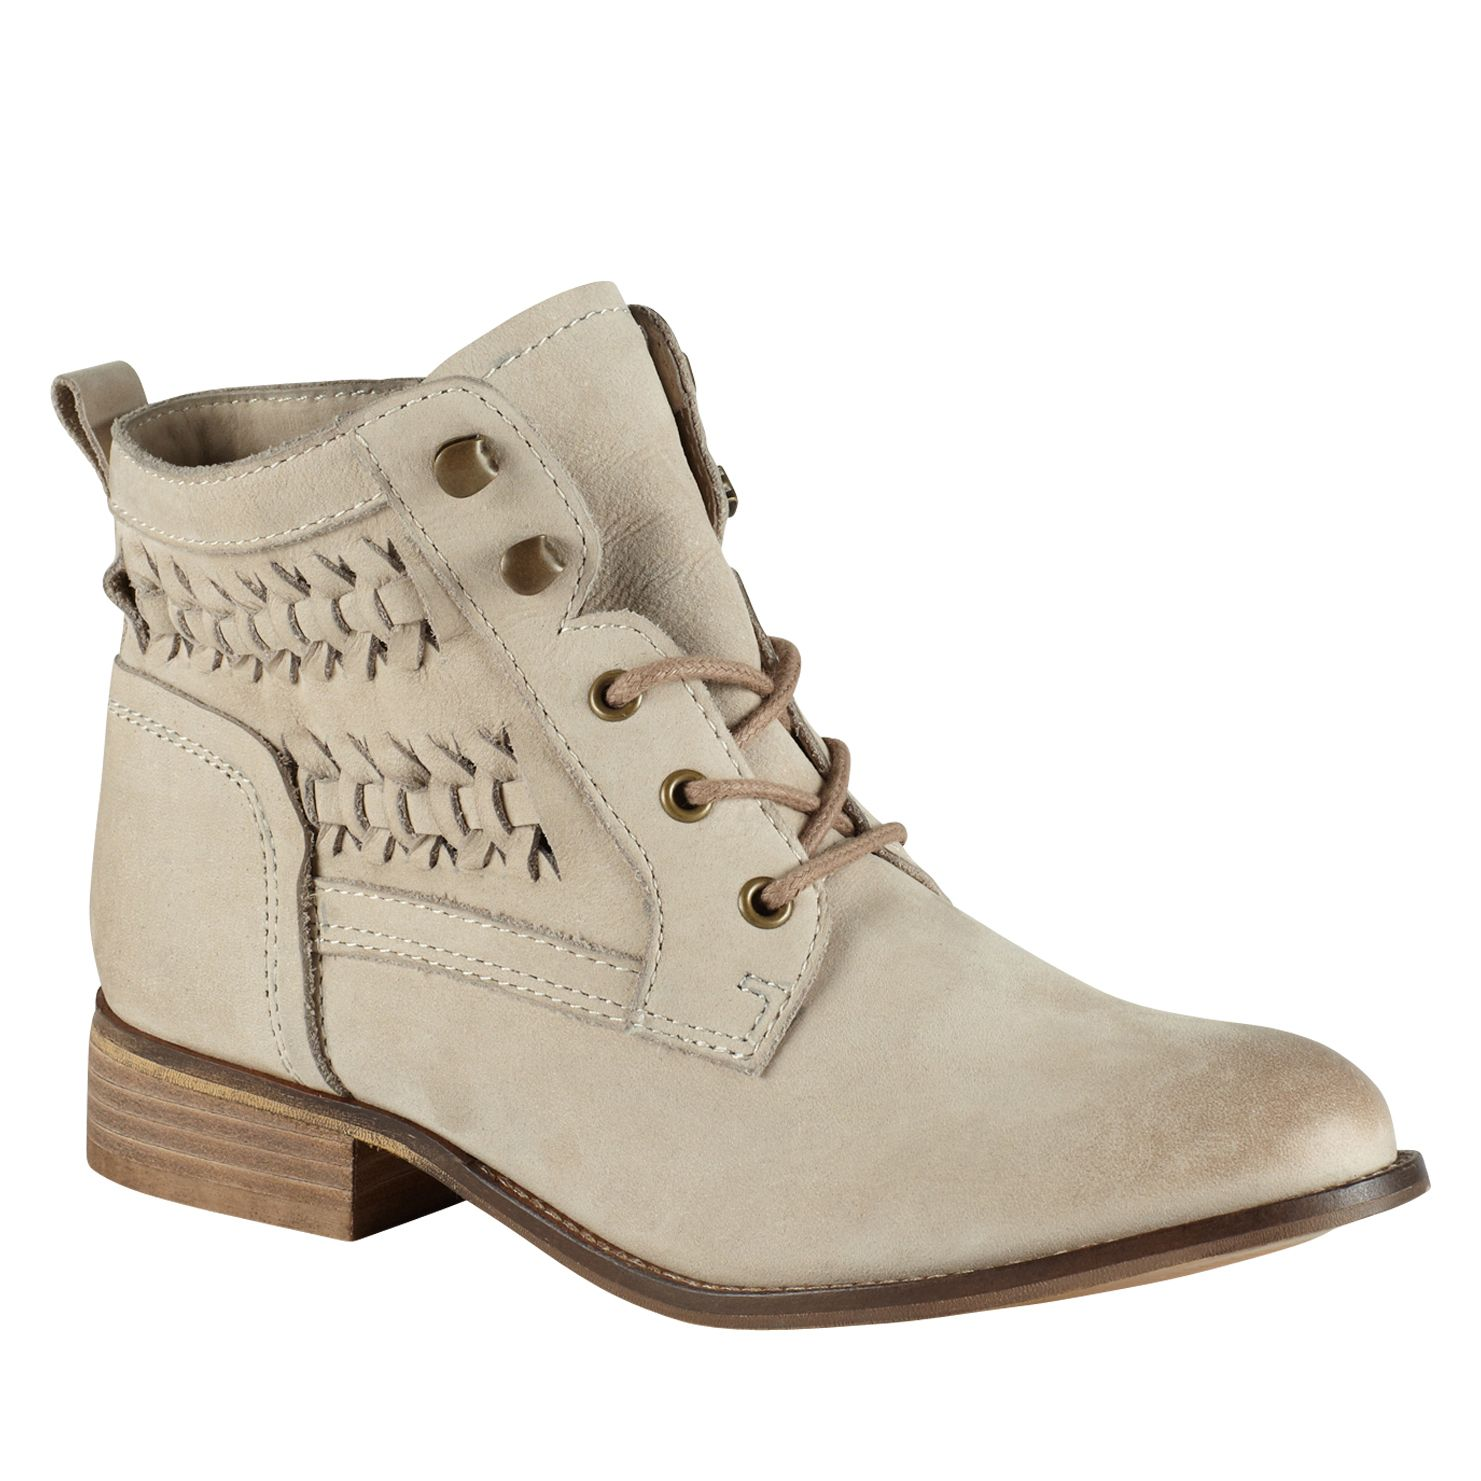 Wirasien almond toe lace up boots